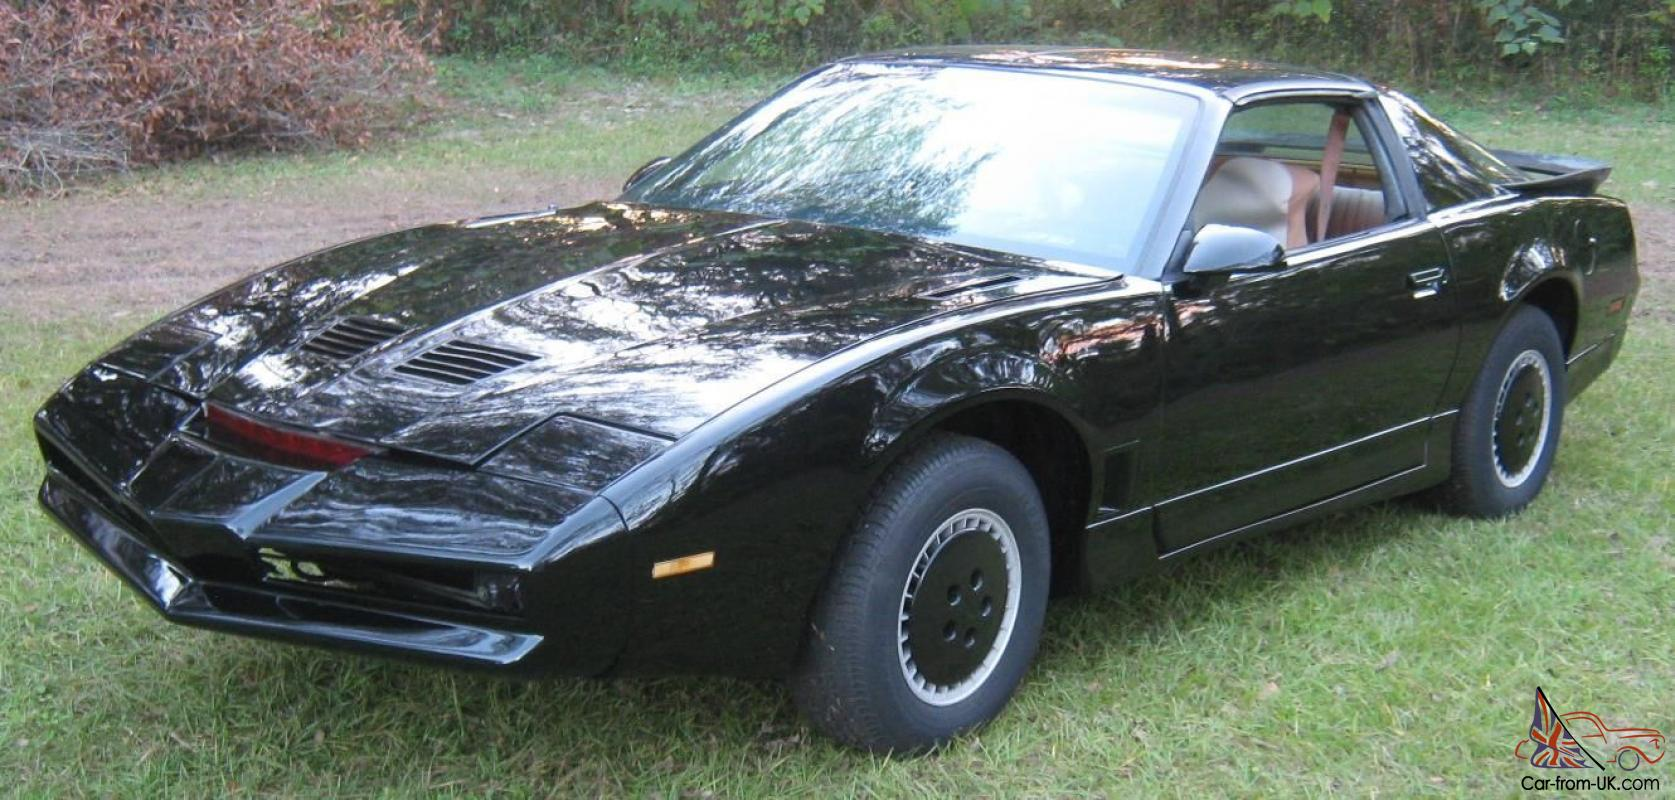 1986 pontiac firebird trans am kitt karr knight rider. Black Bedroom Furniture Sets. Home Design Ideas